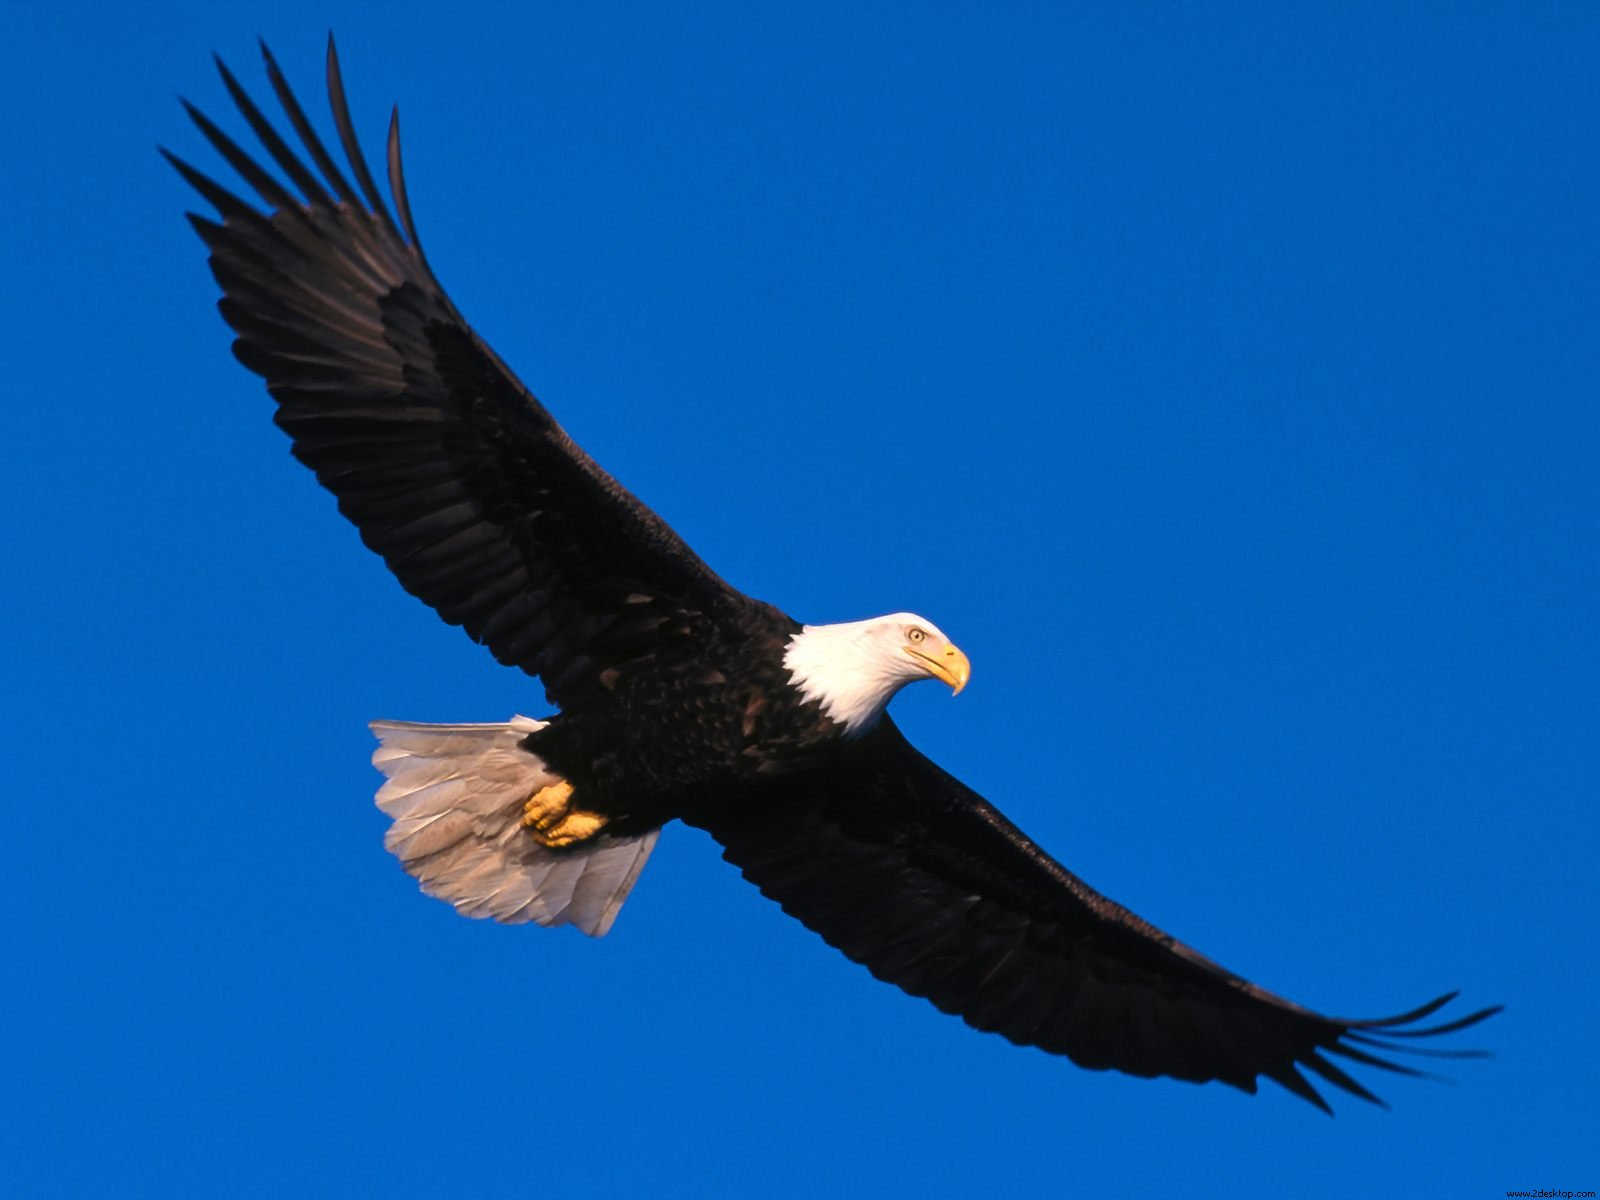 Eagle Soaring High Wallpapers   Hd Wallpapers